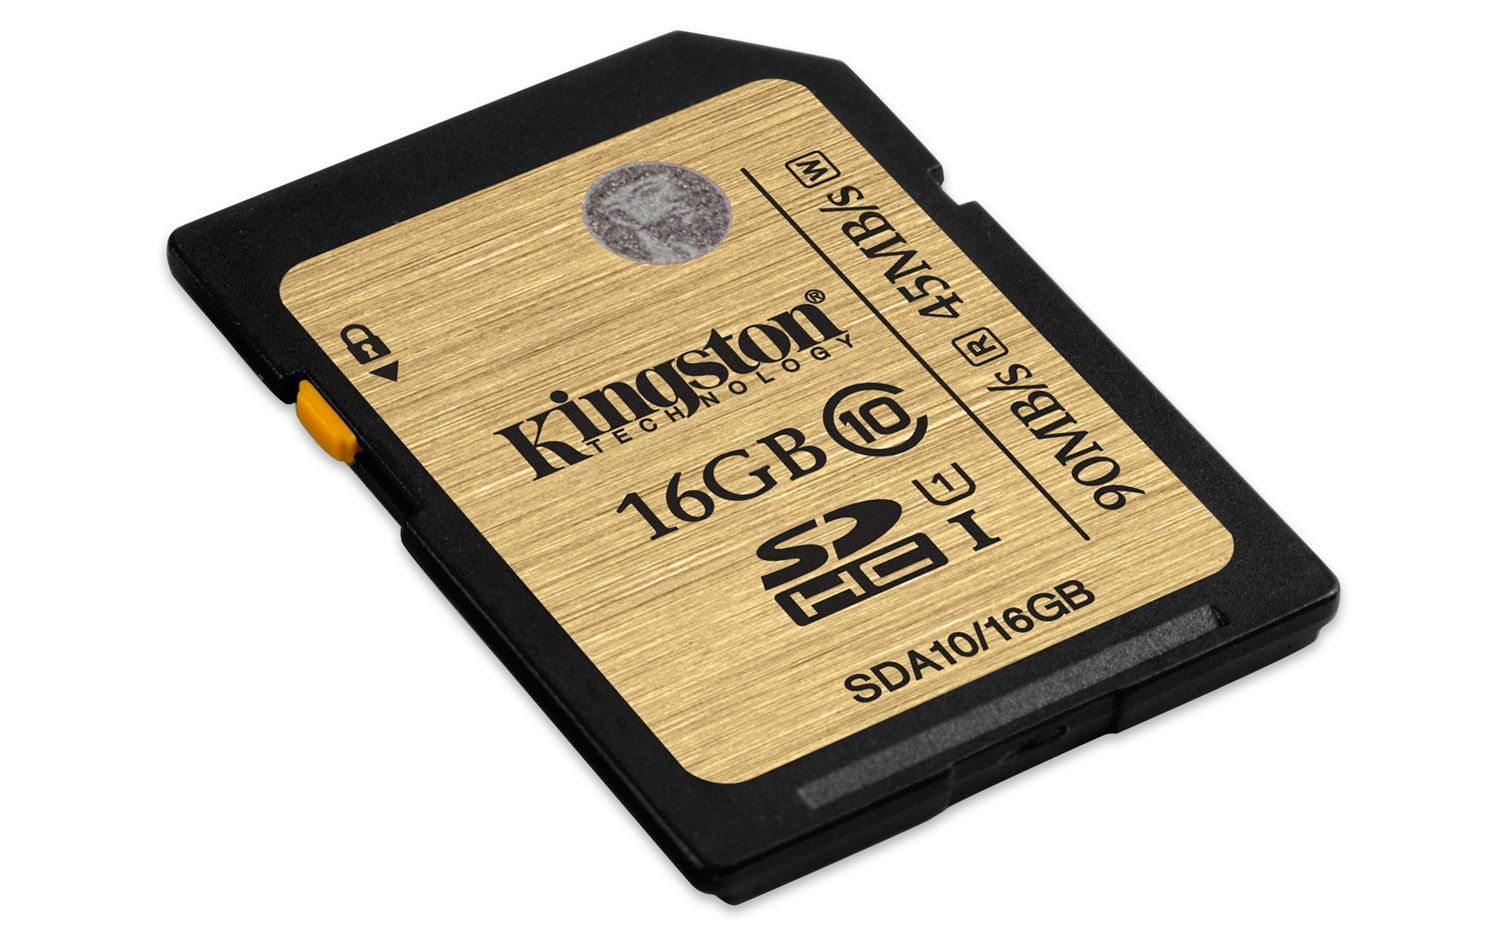 Kingston Ultimate 233x SDHC 16 GB